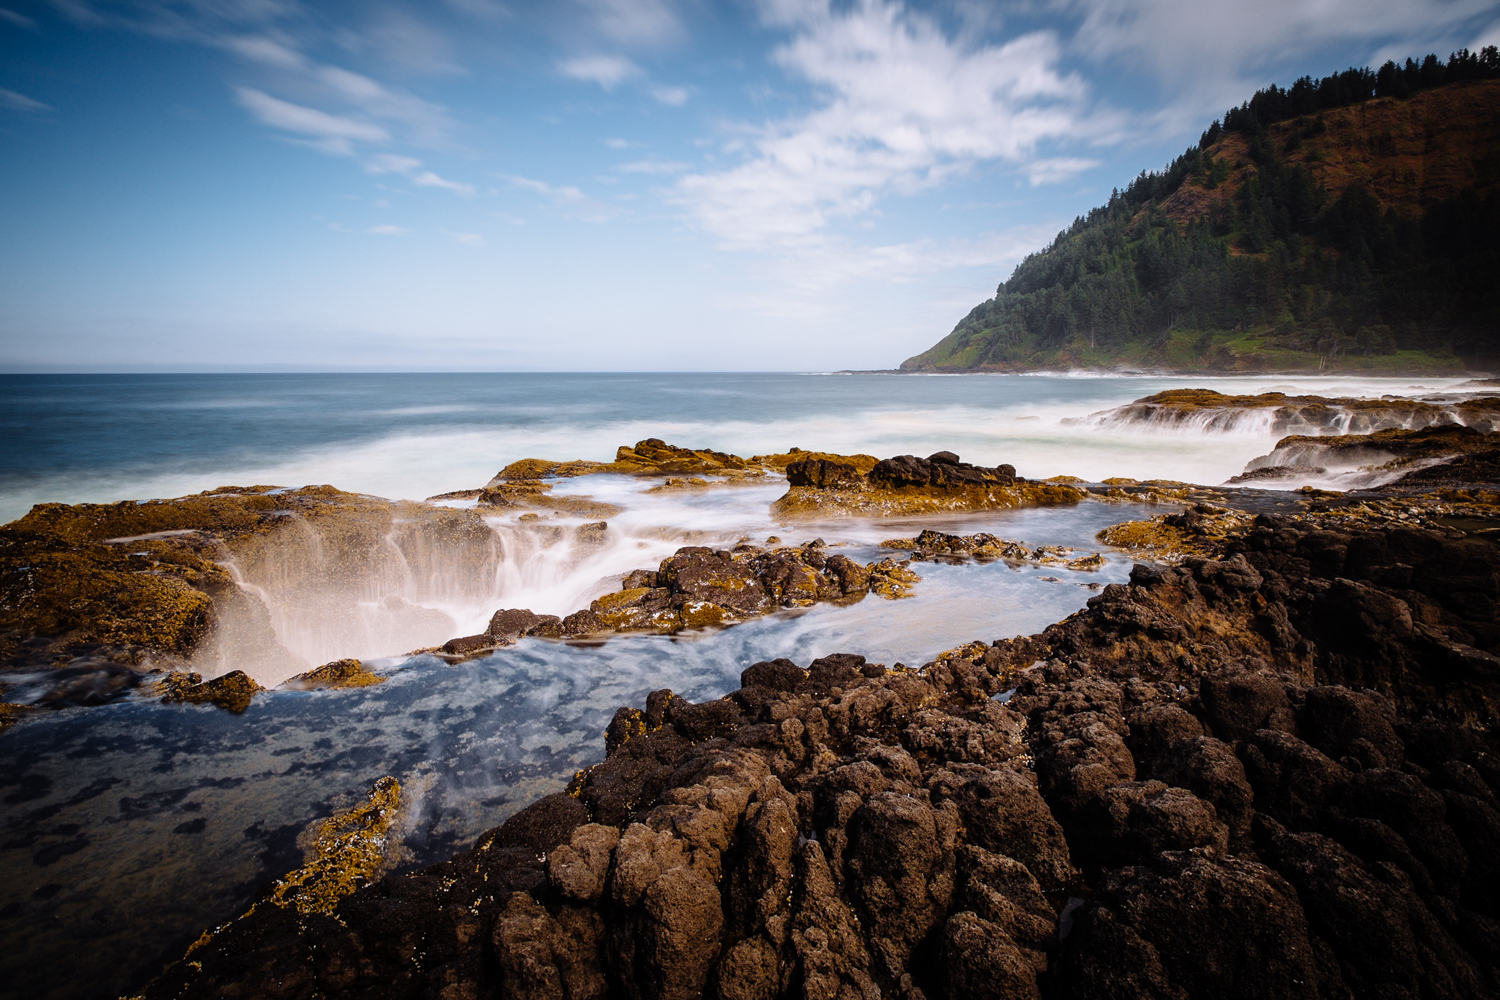 Thor's Well - Cape Perpetua, Oregon Coast. One of my last shots with the X-Pro1 and XF 14mm.